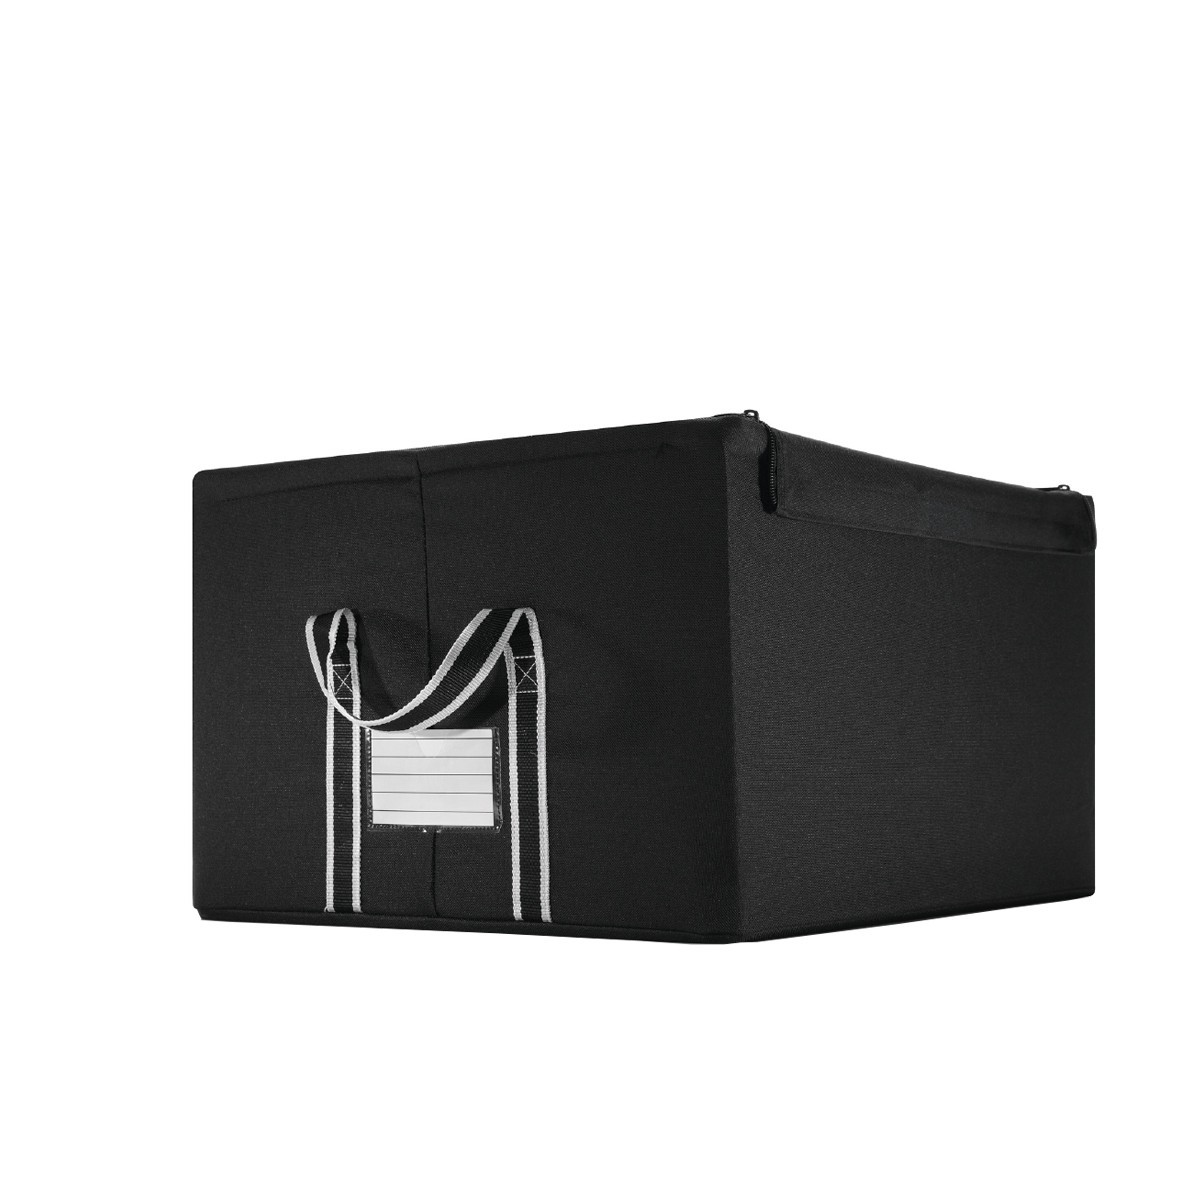 bo te en tissu noir avec armature organisation placards. Black Bedroom Furniture Sets. Home Design Ideas